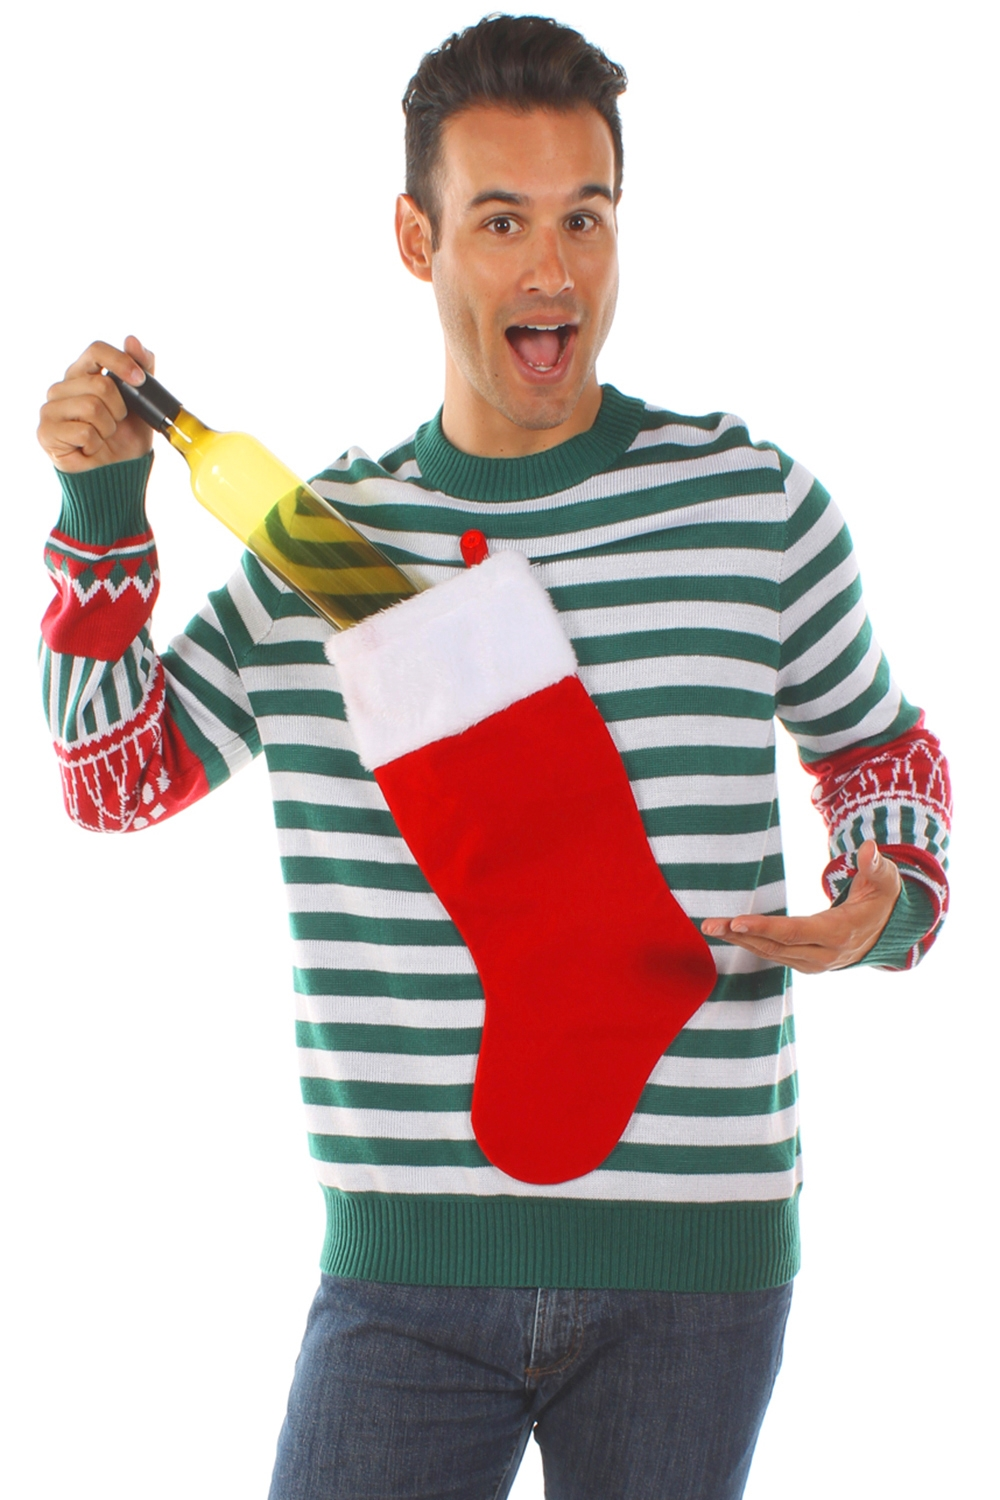 Make sure you're wearing your joy on your sleeve with these Christmas jumpers perfect for the festive season. Click through the gallery to see the best Christmas jumpers, sweaters and cardigans.